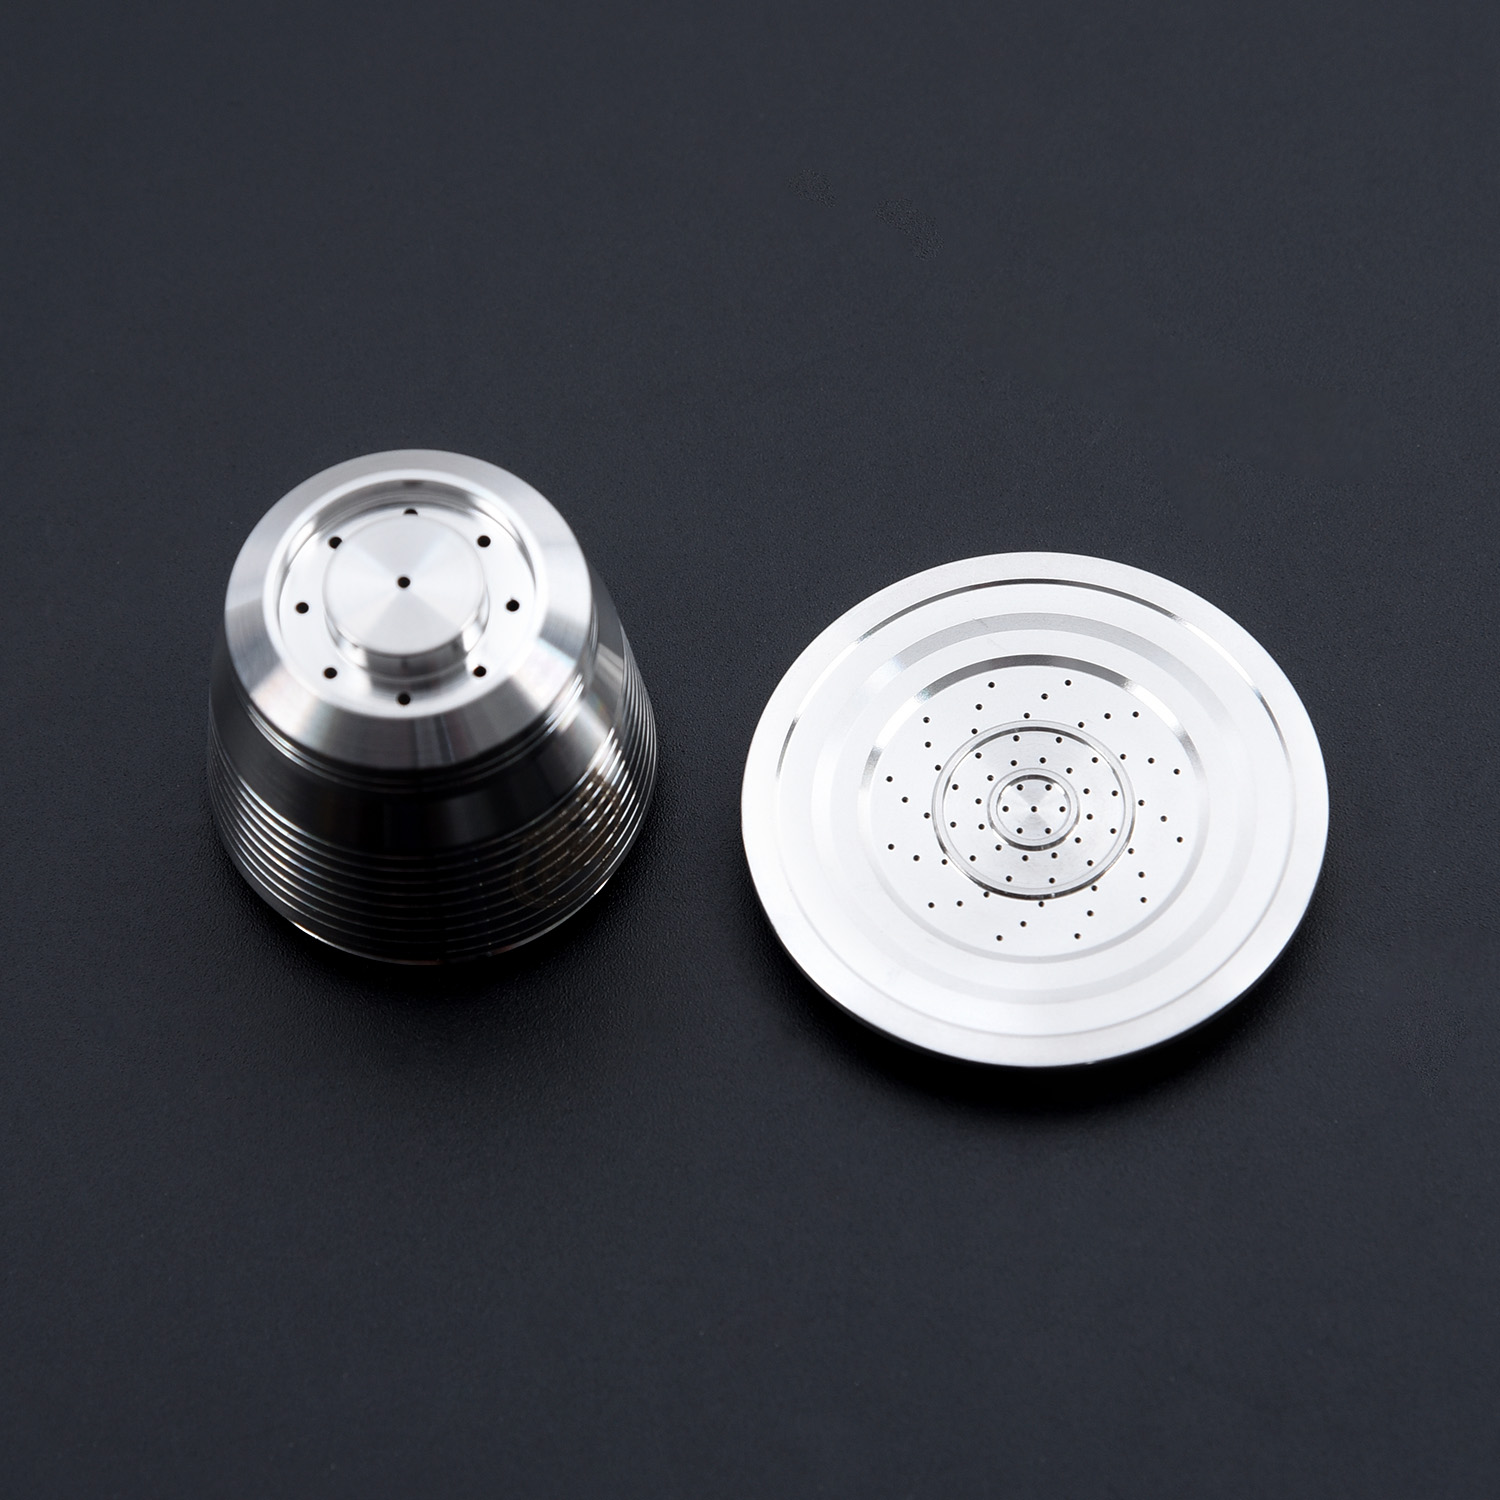 Metal Nespresso Refillable Upgrade Round Cafe Dripper Stainless Steel Empty Capsule Reusable Coffee Filter Coffeware Sets